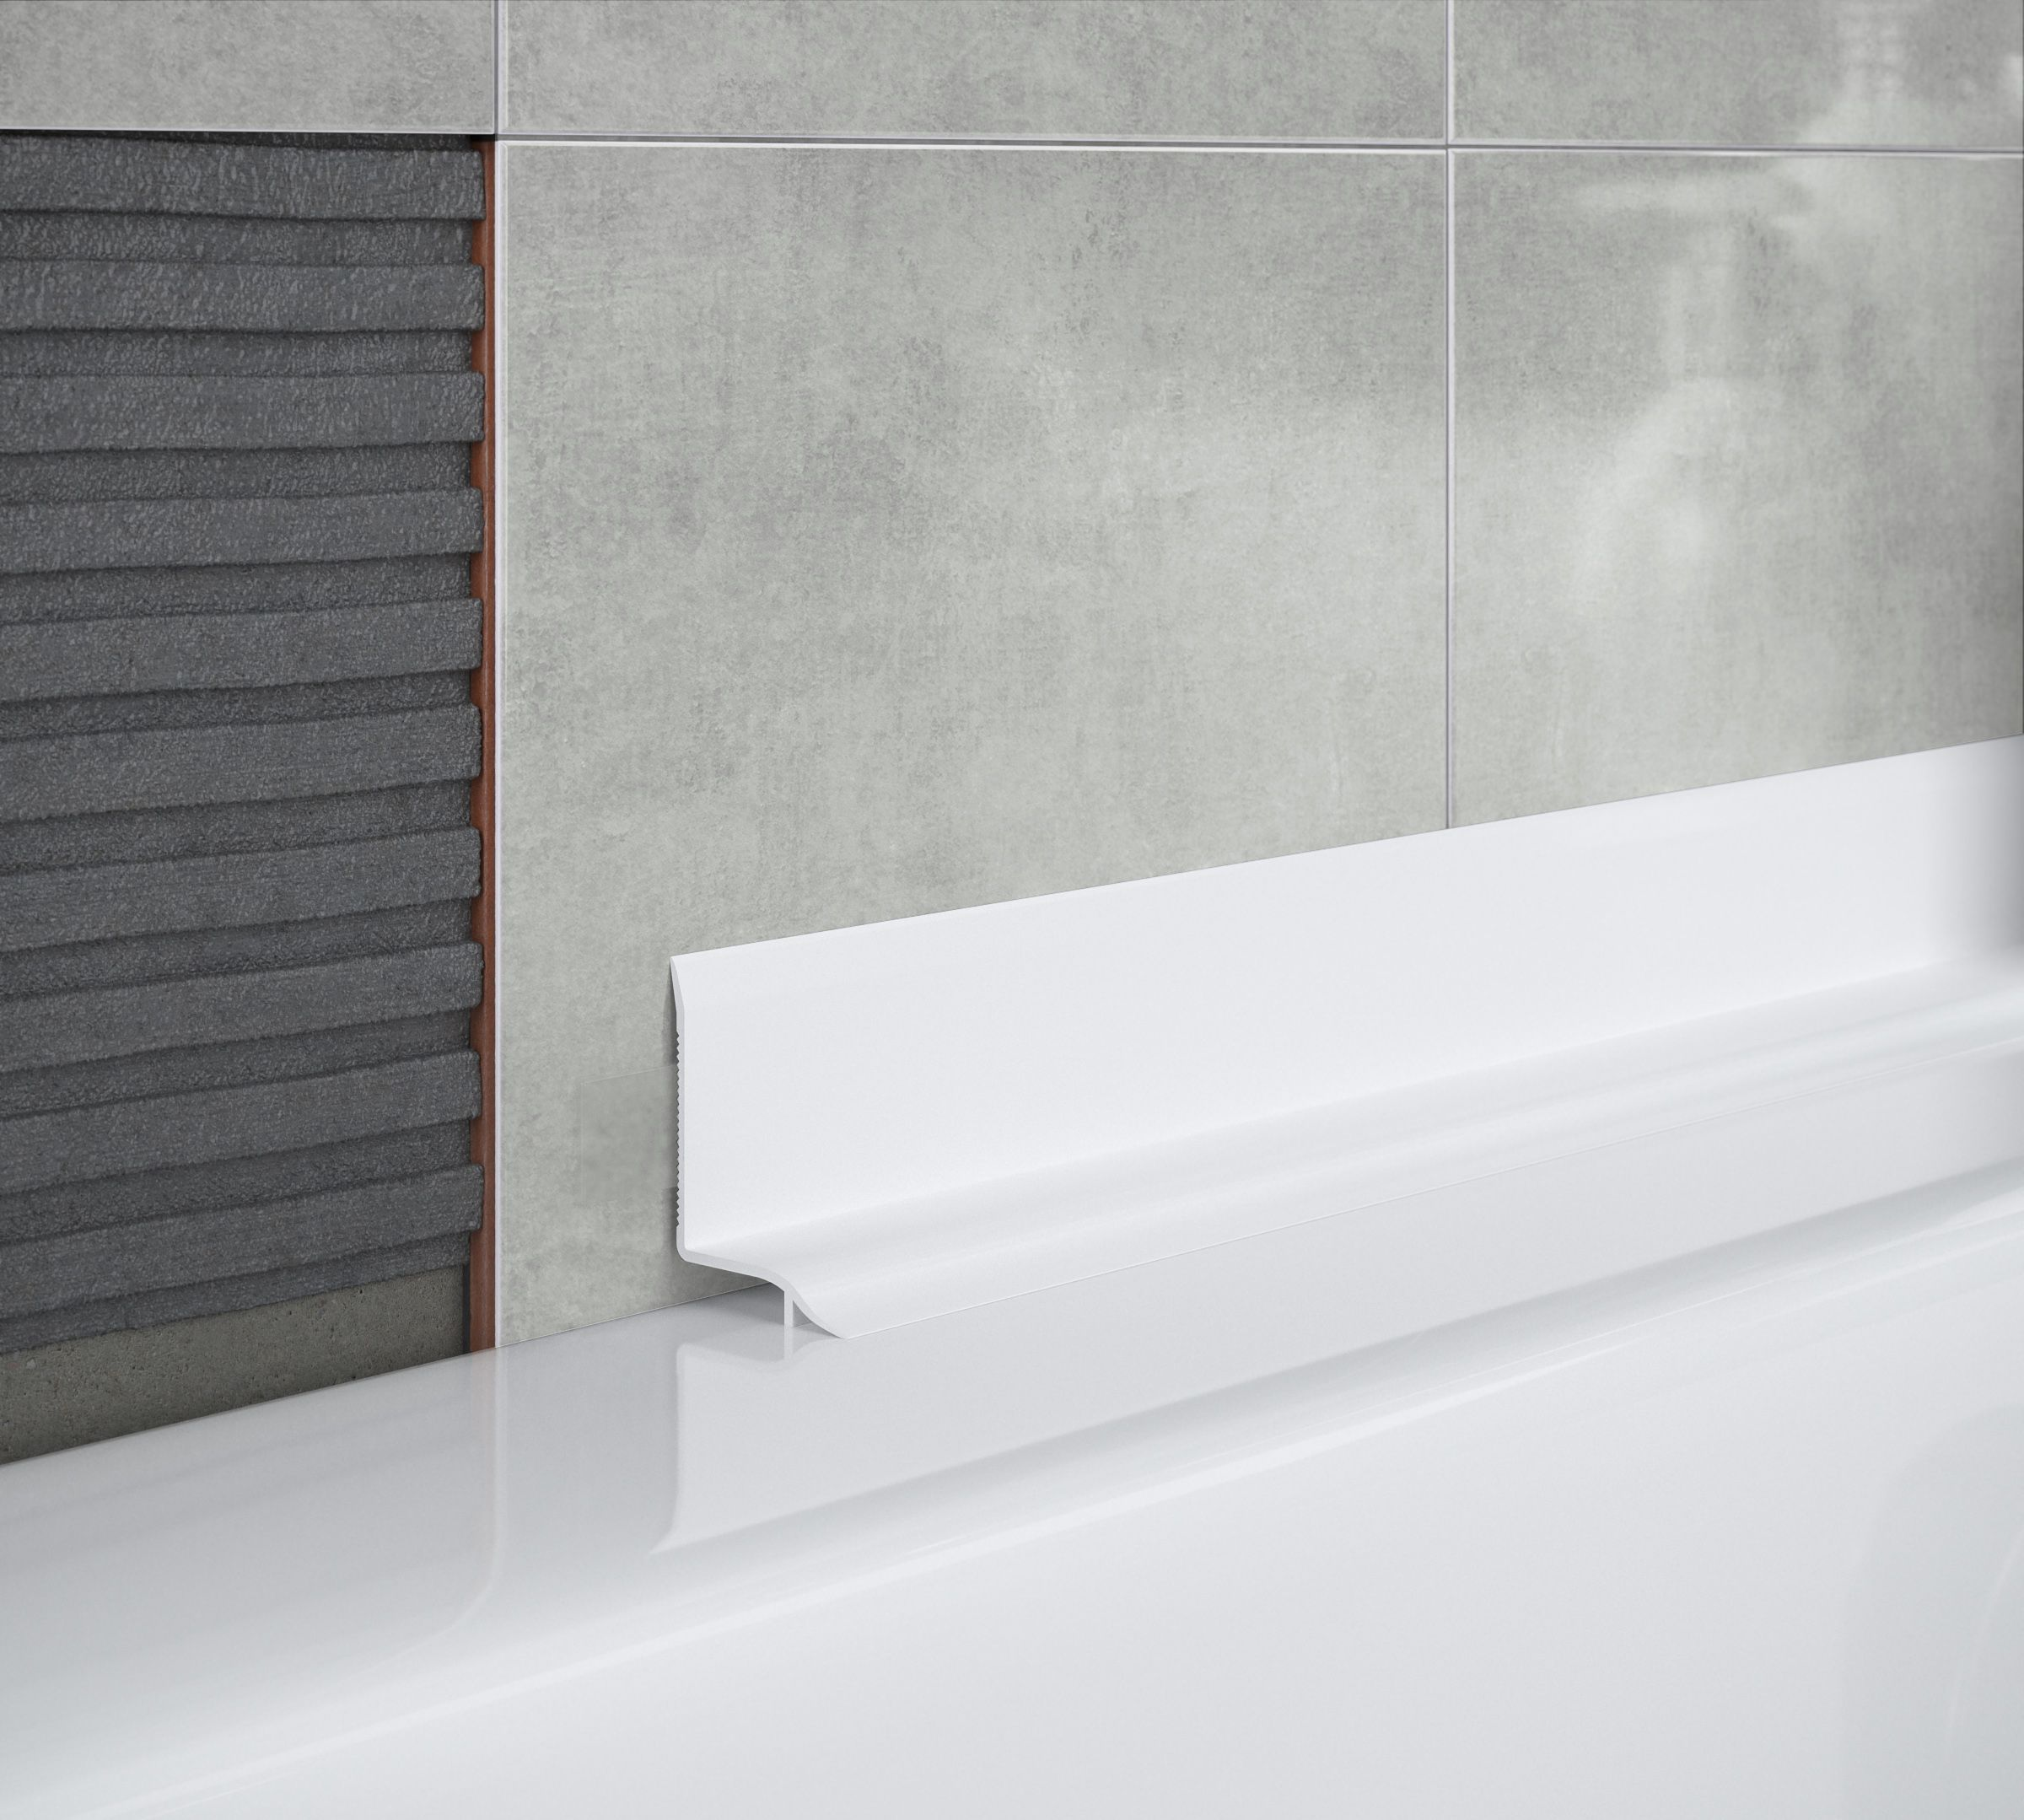 Superieur Self Adhesive Curved Bath Seal Trim